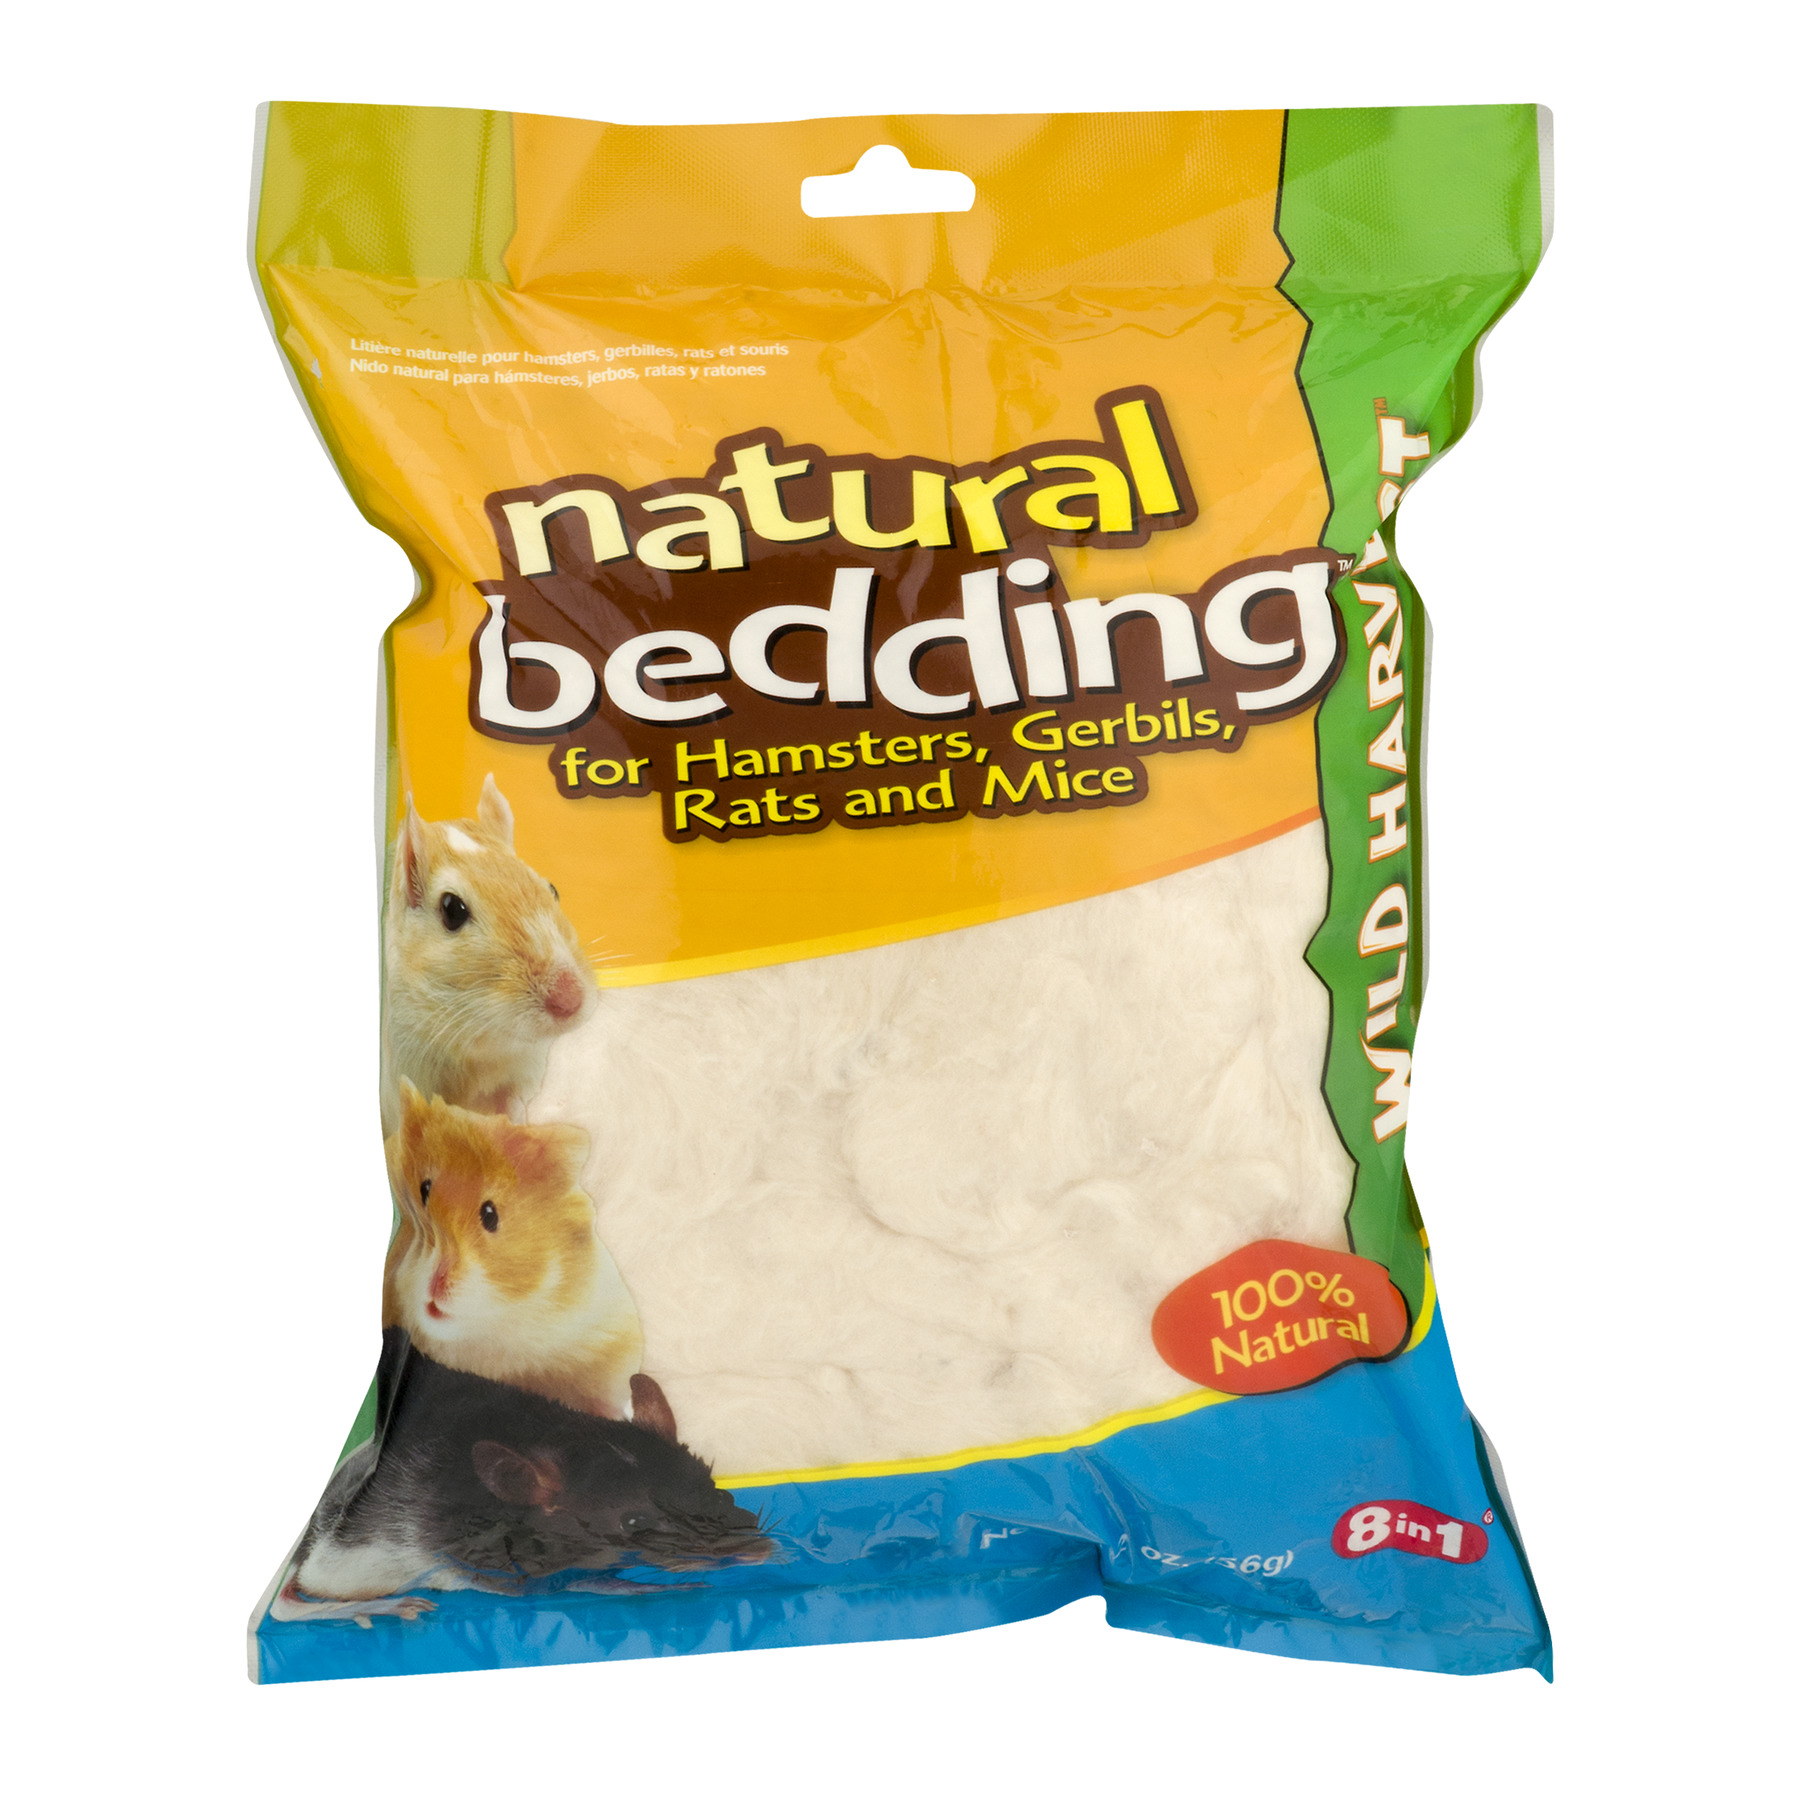 Wild Harvest Natural Bedding for Small Animals, 2.0 OZ